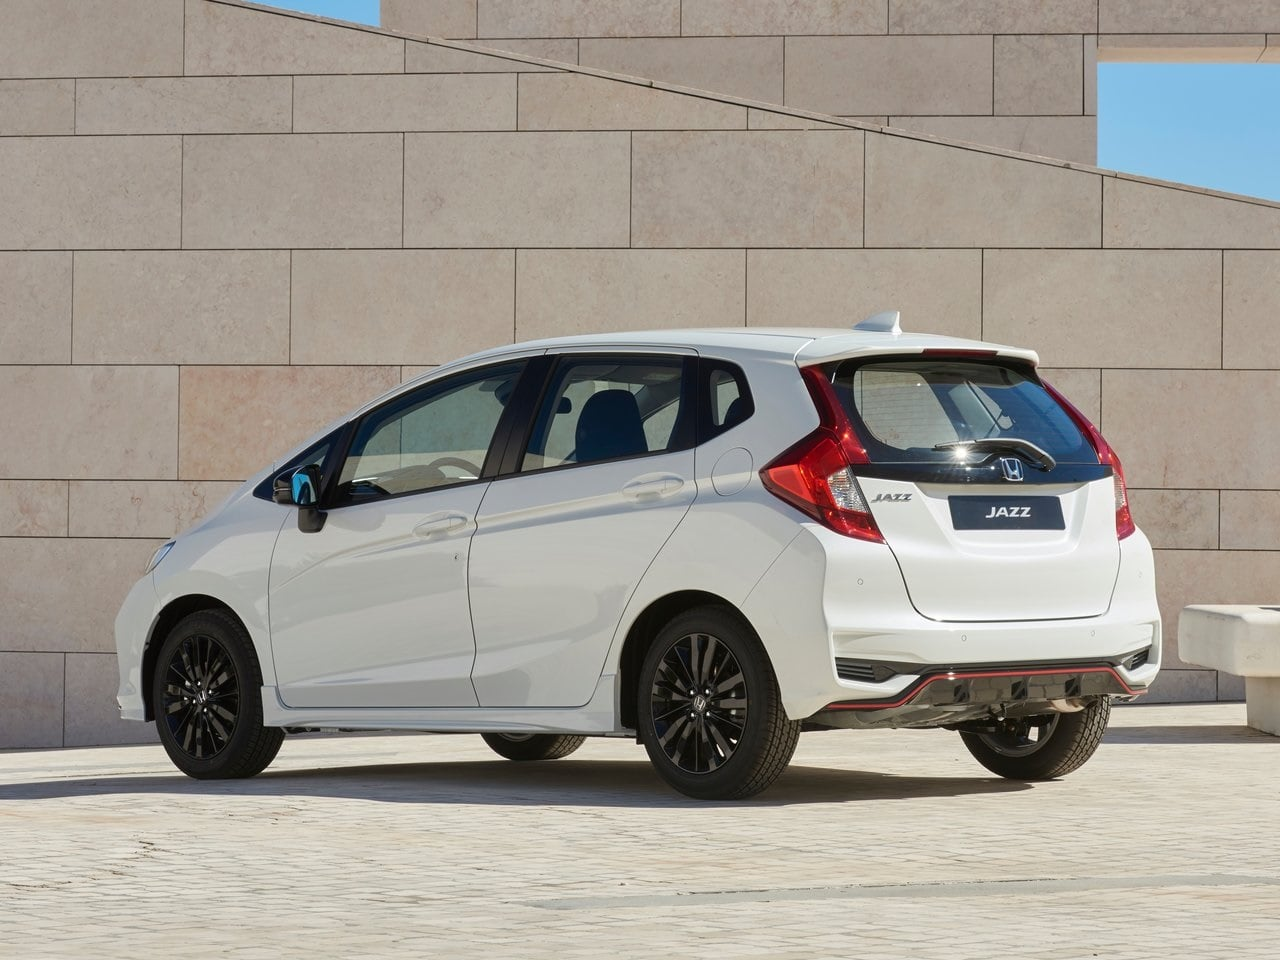 2018 honda jazz facelift launch date price in india specs mileage. Black Bedroom Furniture Sets. Home Design Ideas